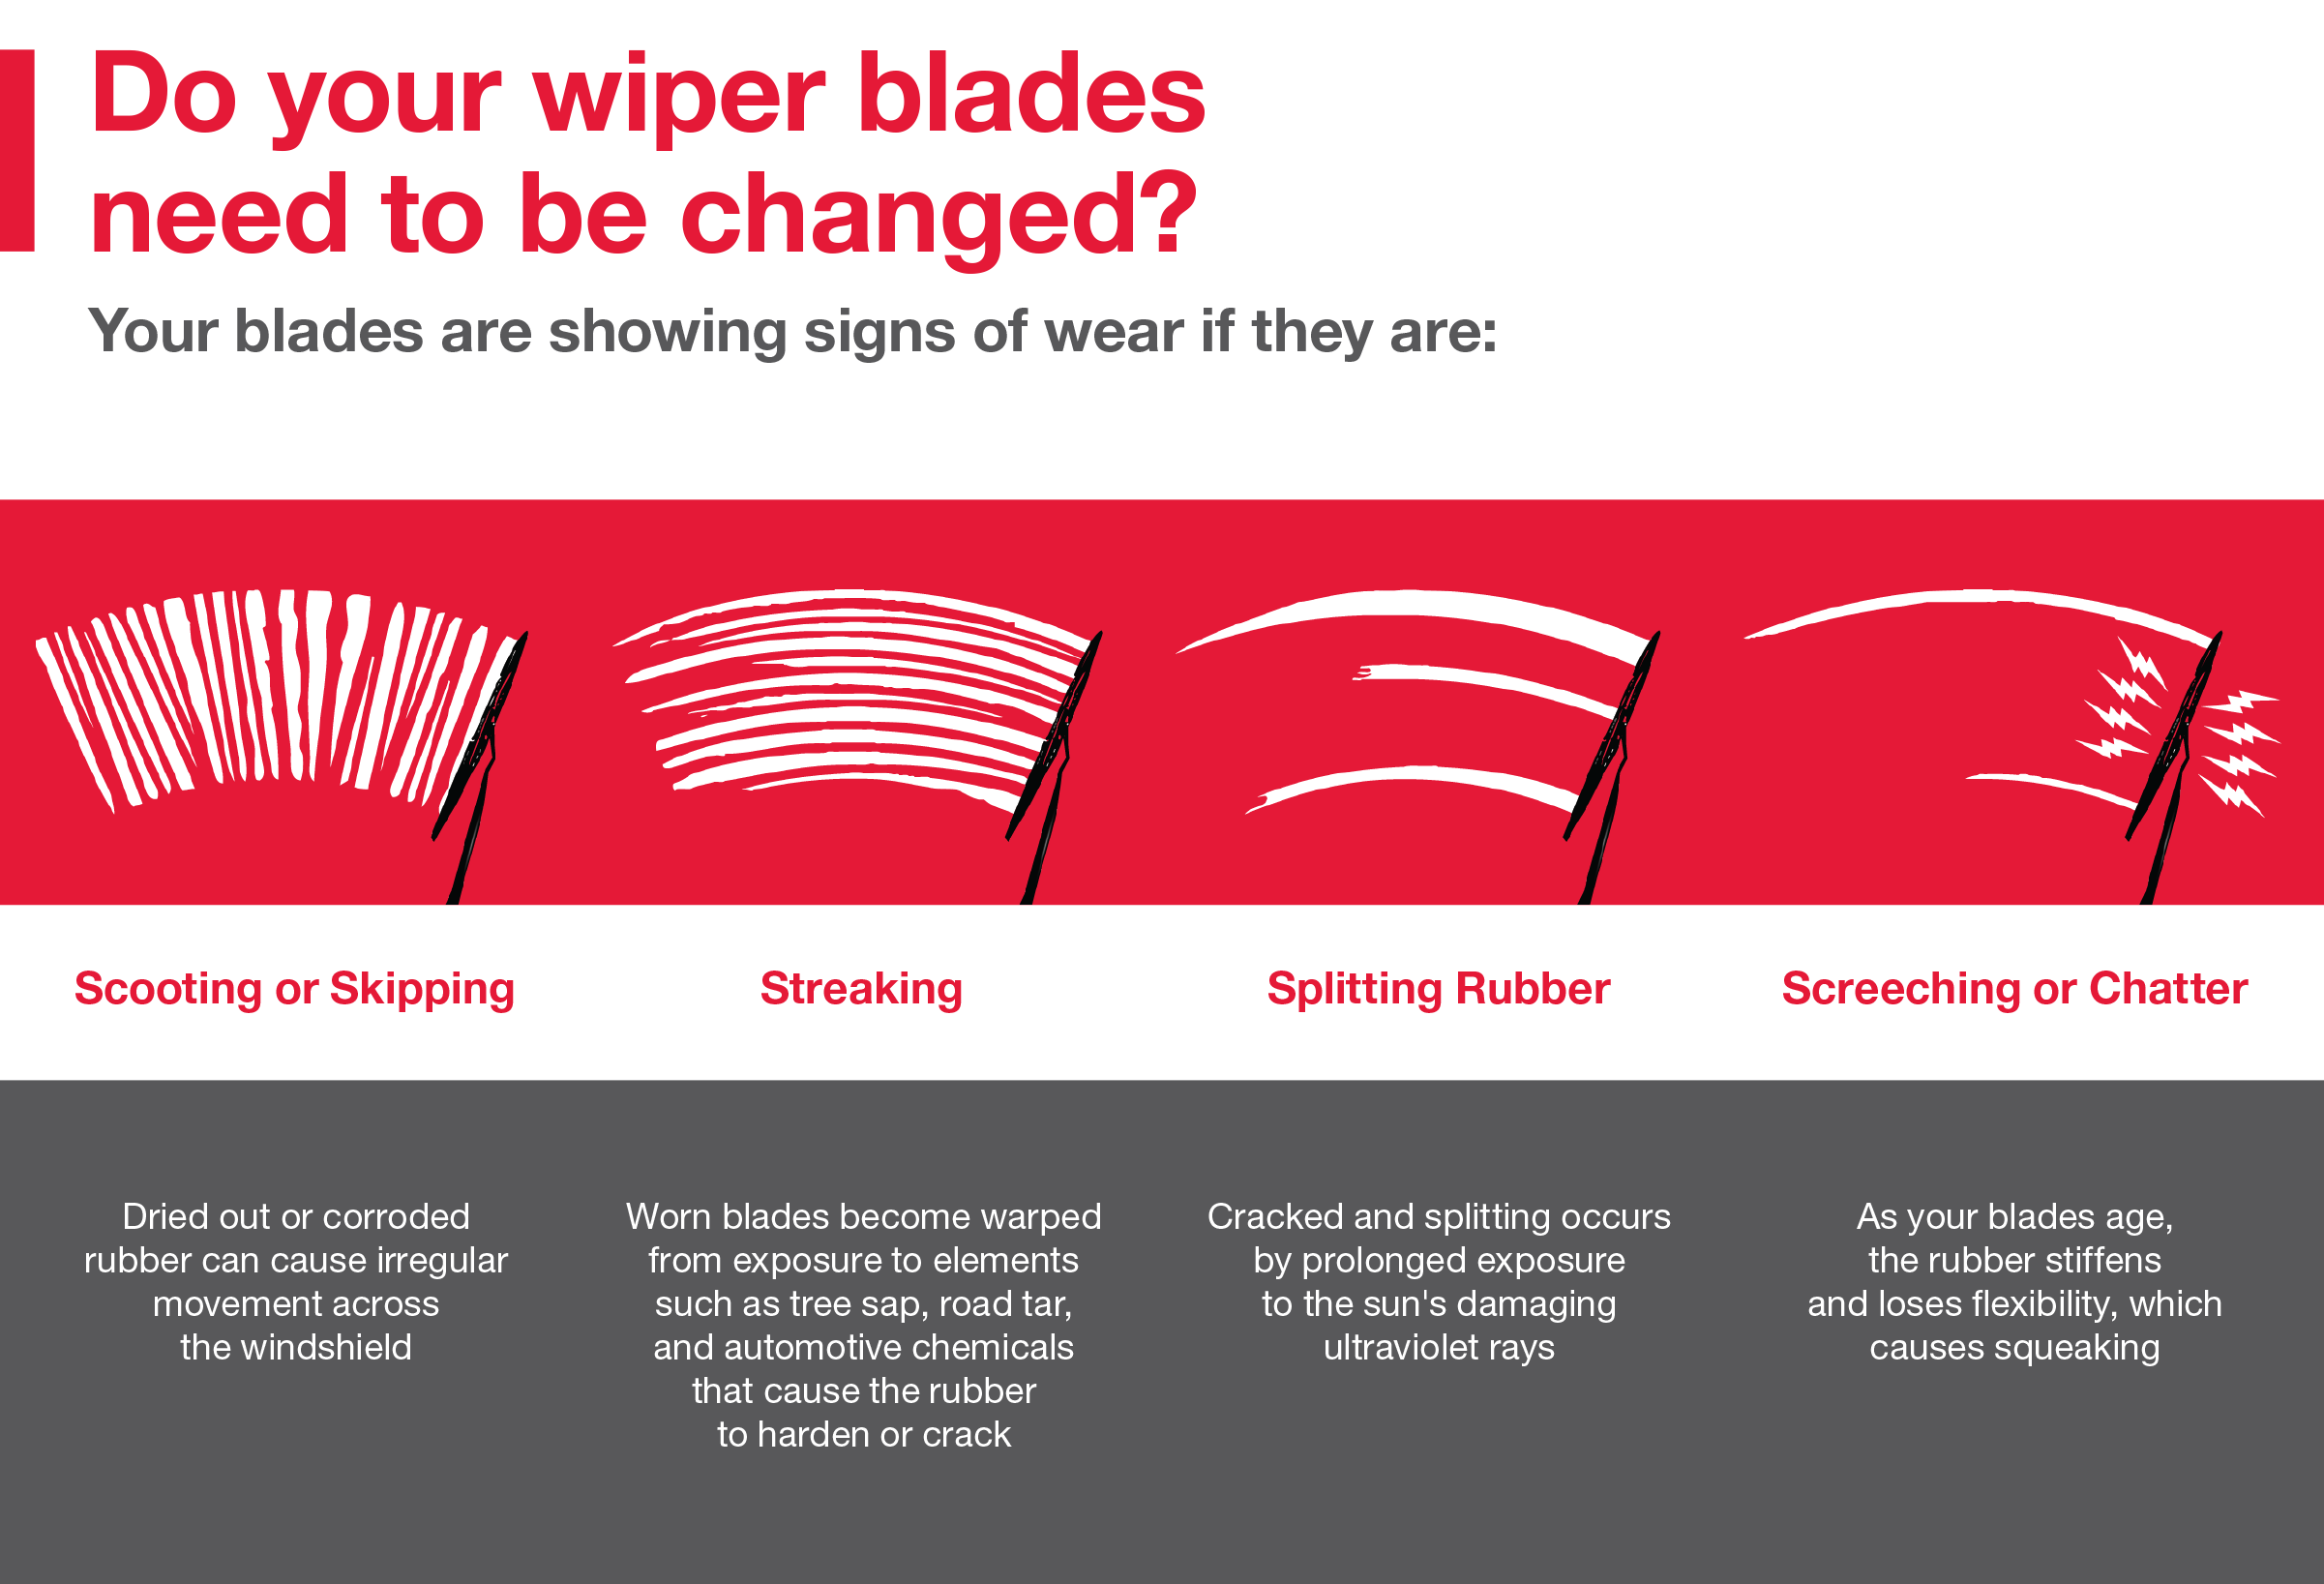 Do your wiper blades need to be changed? Call your local dealer for more info: 215-244-9300